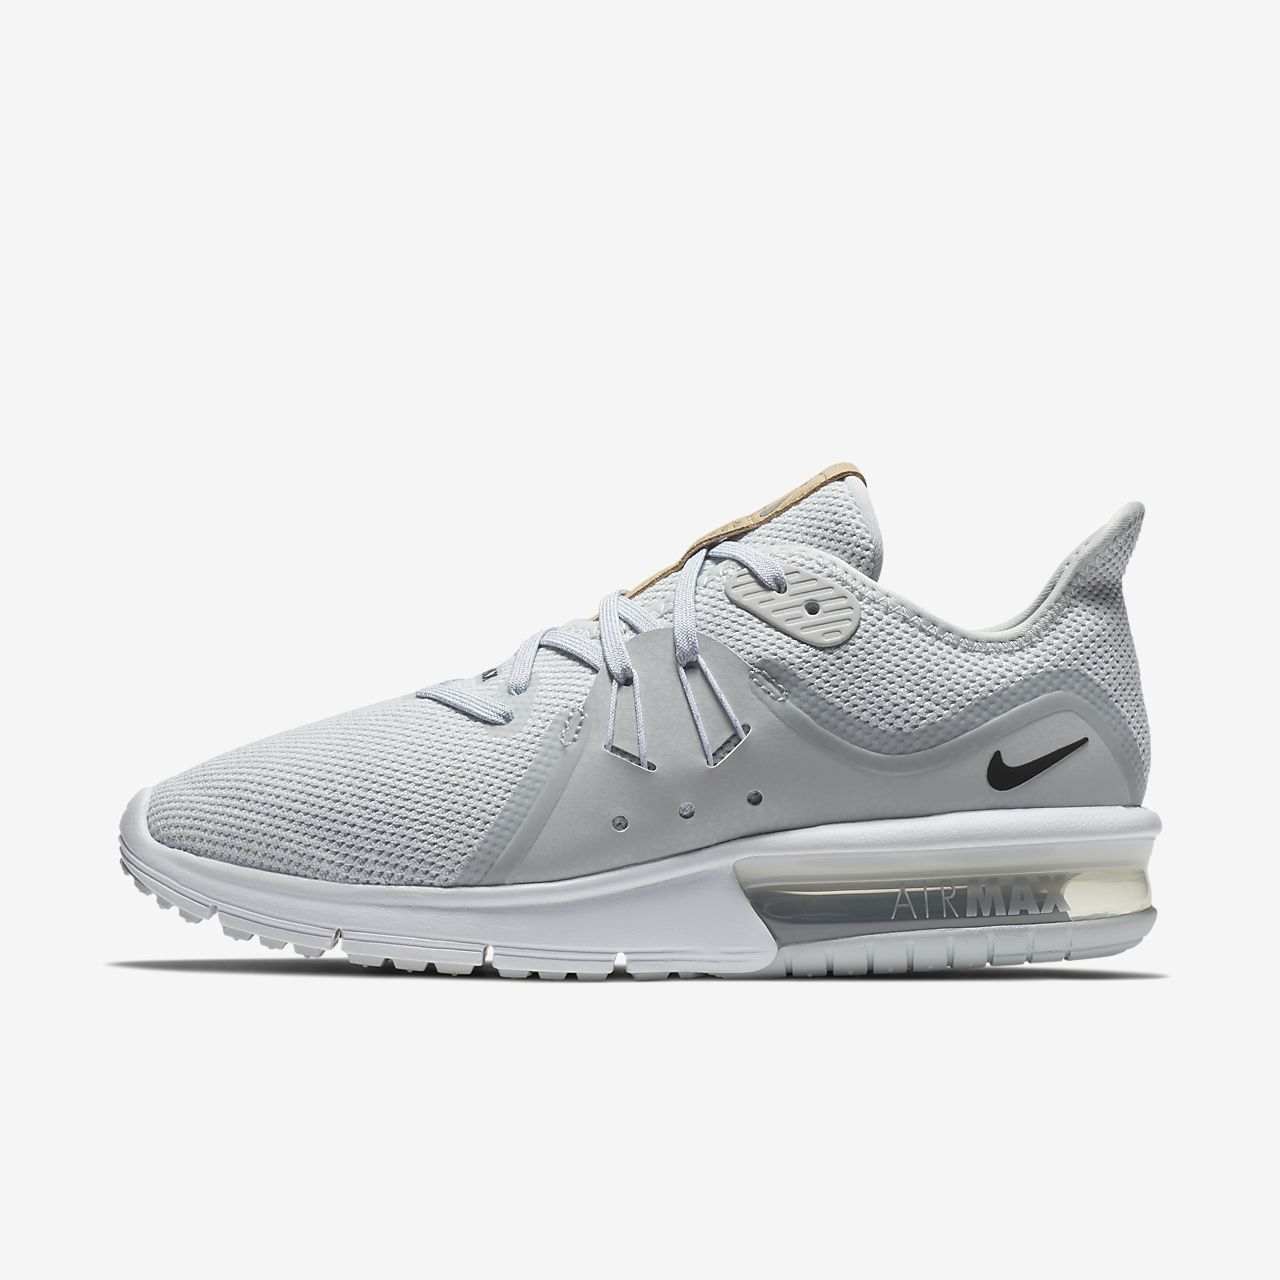 Chaussure de running Sequent Nike Air Max Sequent running 3 pour LU df299c